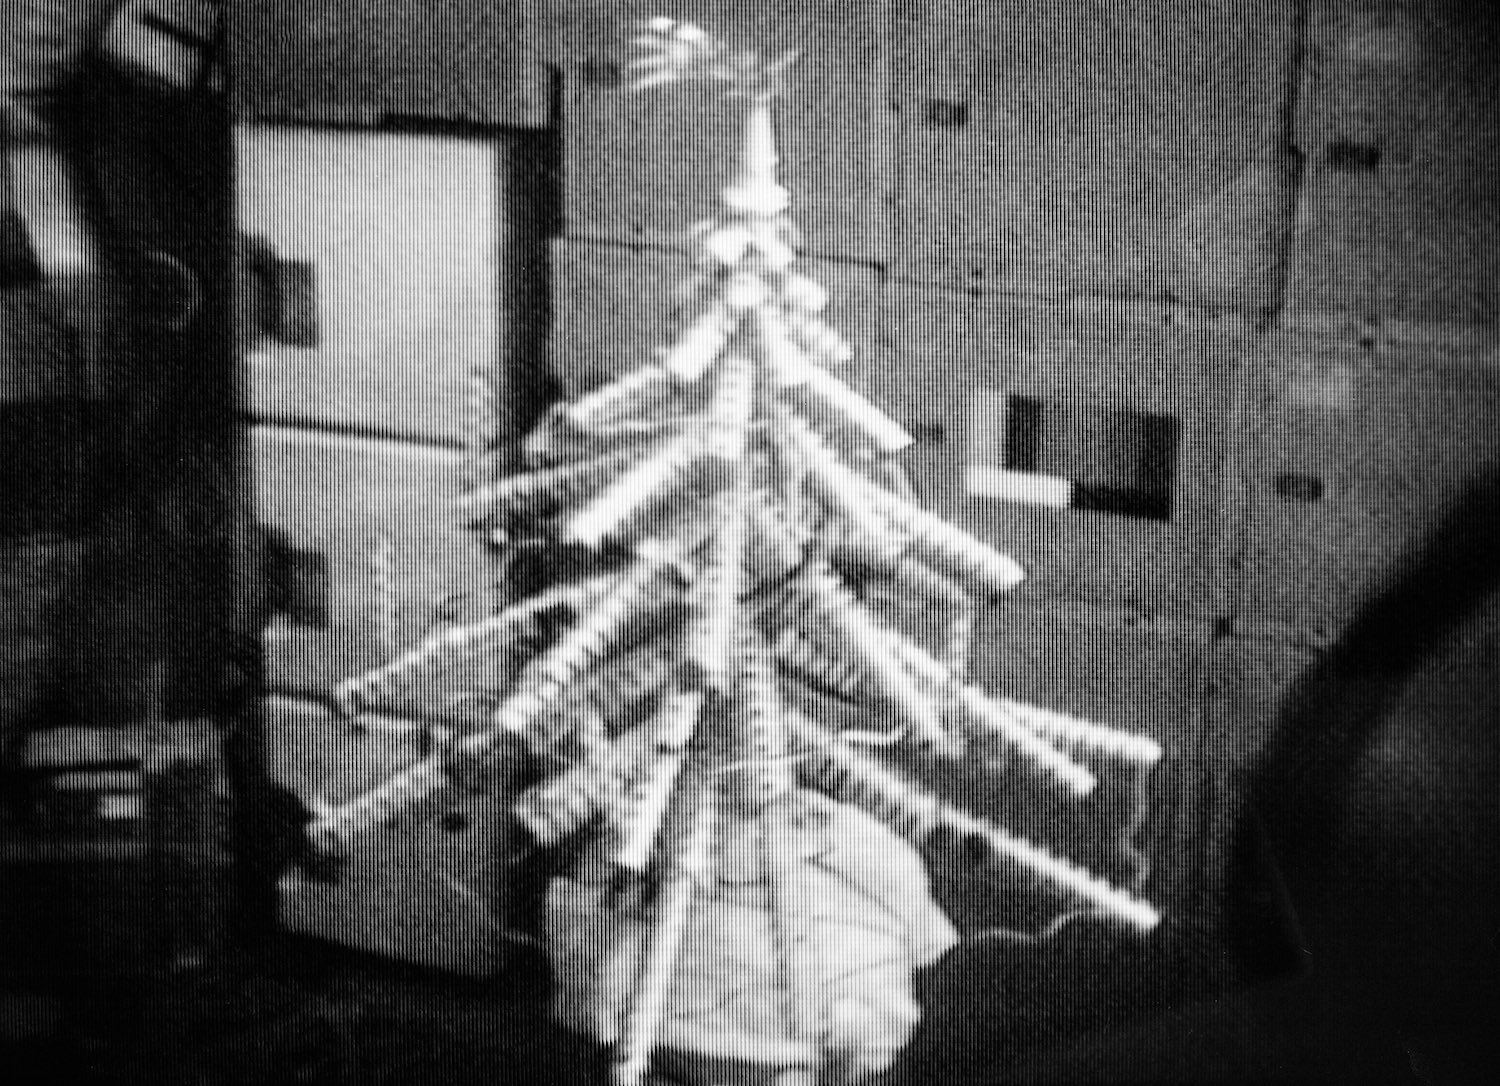 Skylab's Christmas tree, fashioned by the astronauts Gerald Carr, William Pogue and Ed Gibson in December 1973. Image credit: NASA